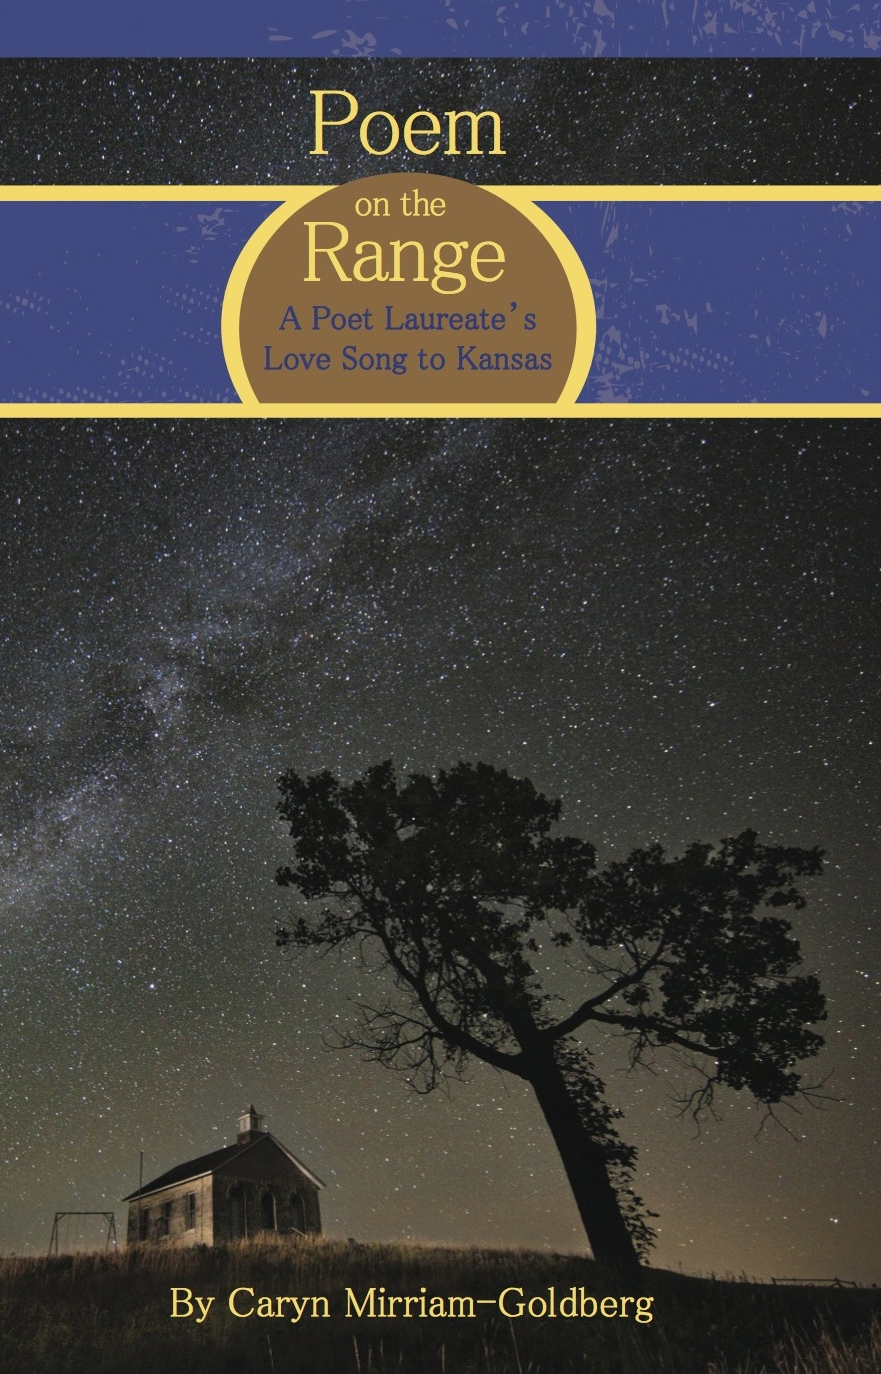 cover art for Poem on the Range: A Poet Laureate's Love Song to Kansas by Caryn Mirriam-Goldberg